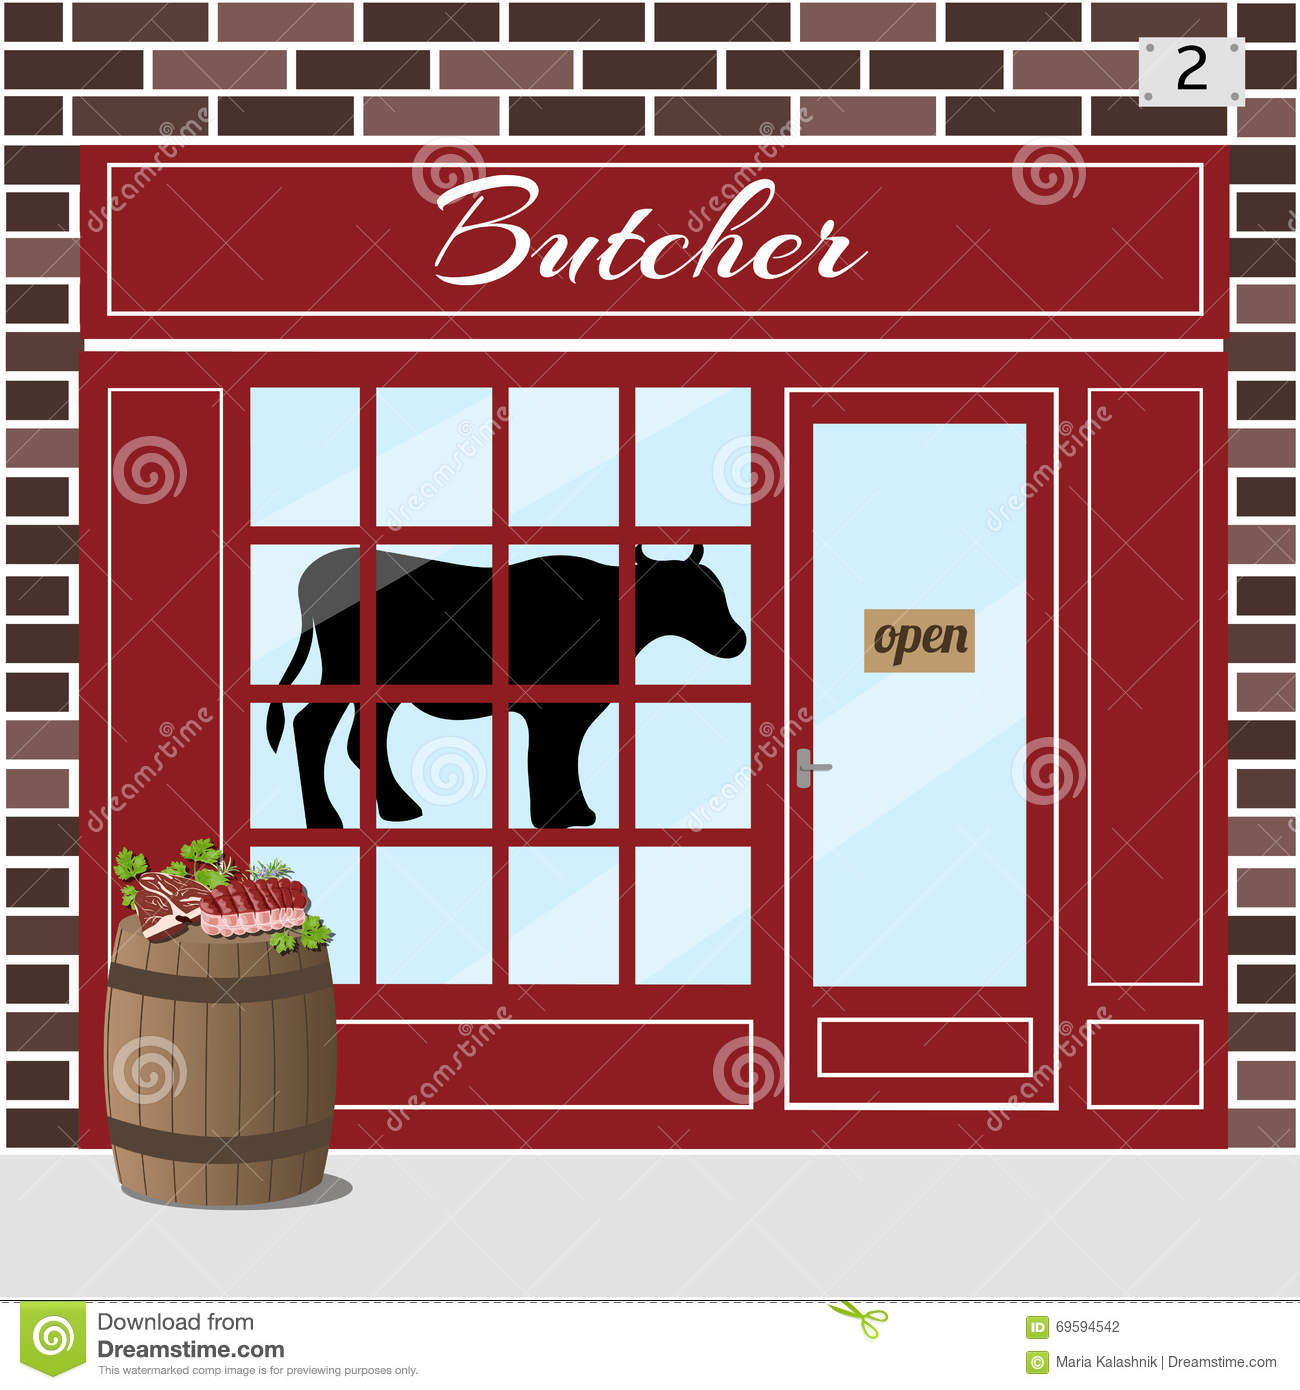 Pork meat in a shop window royalty free stock image 5113 - Stickers facade cuisine ...